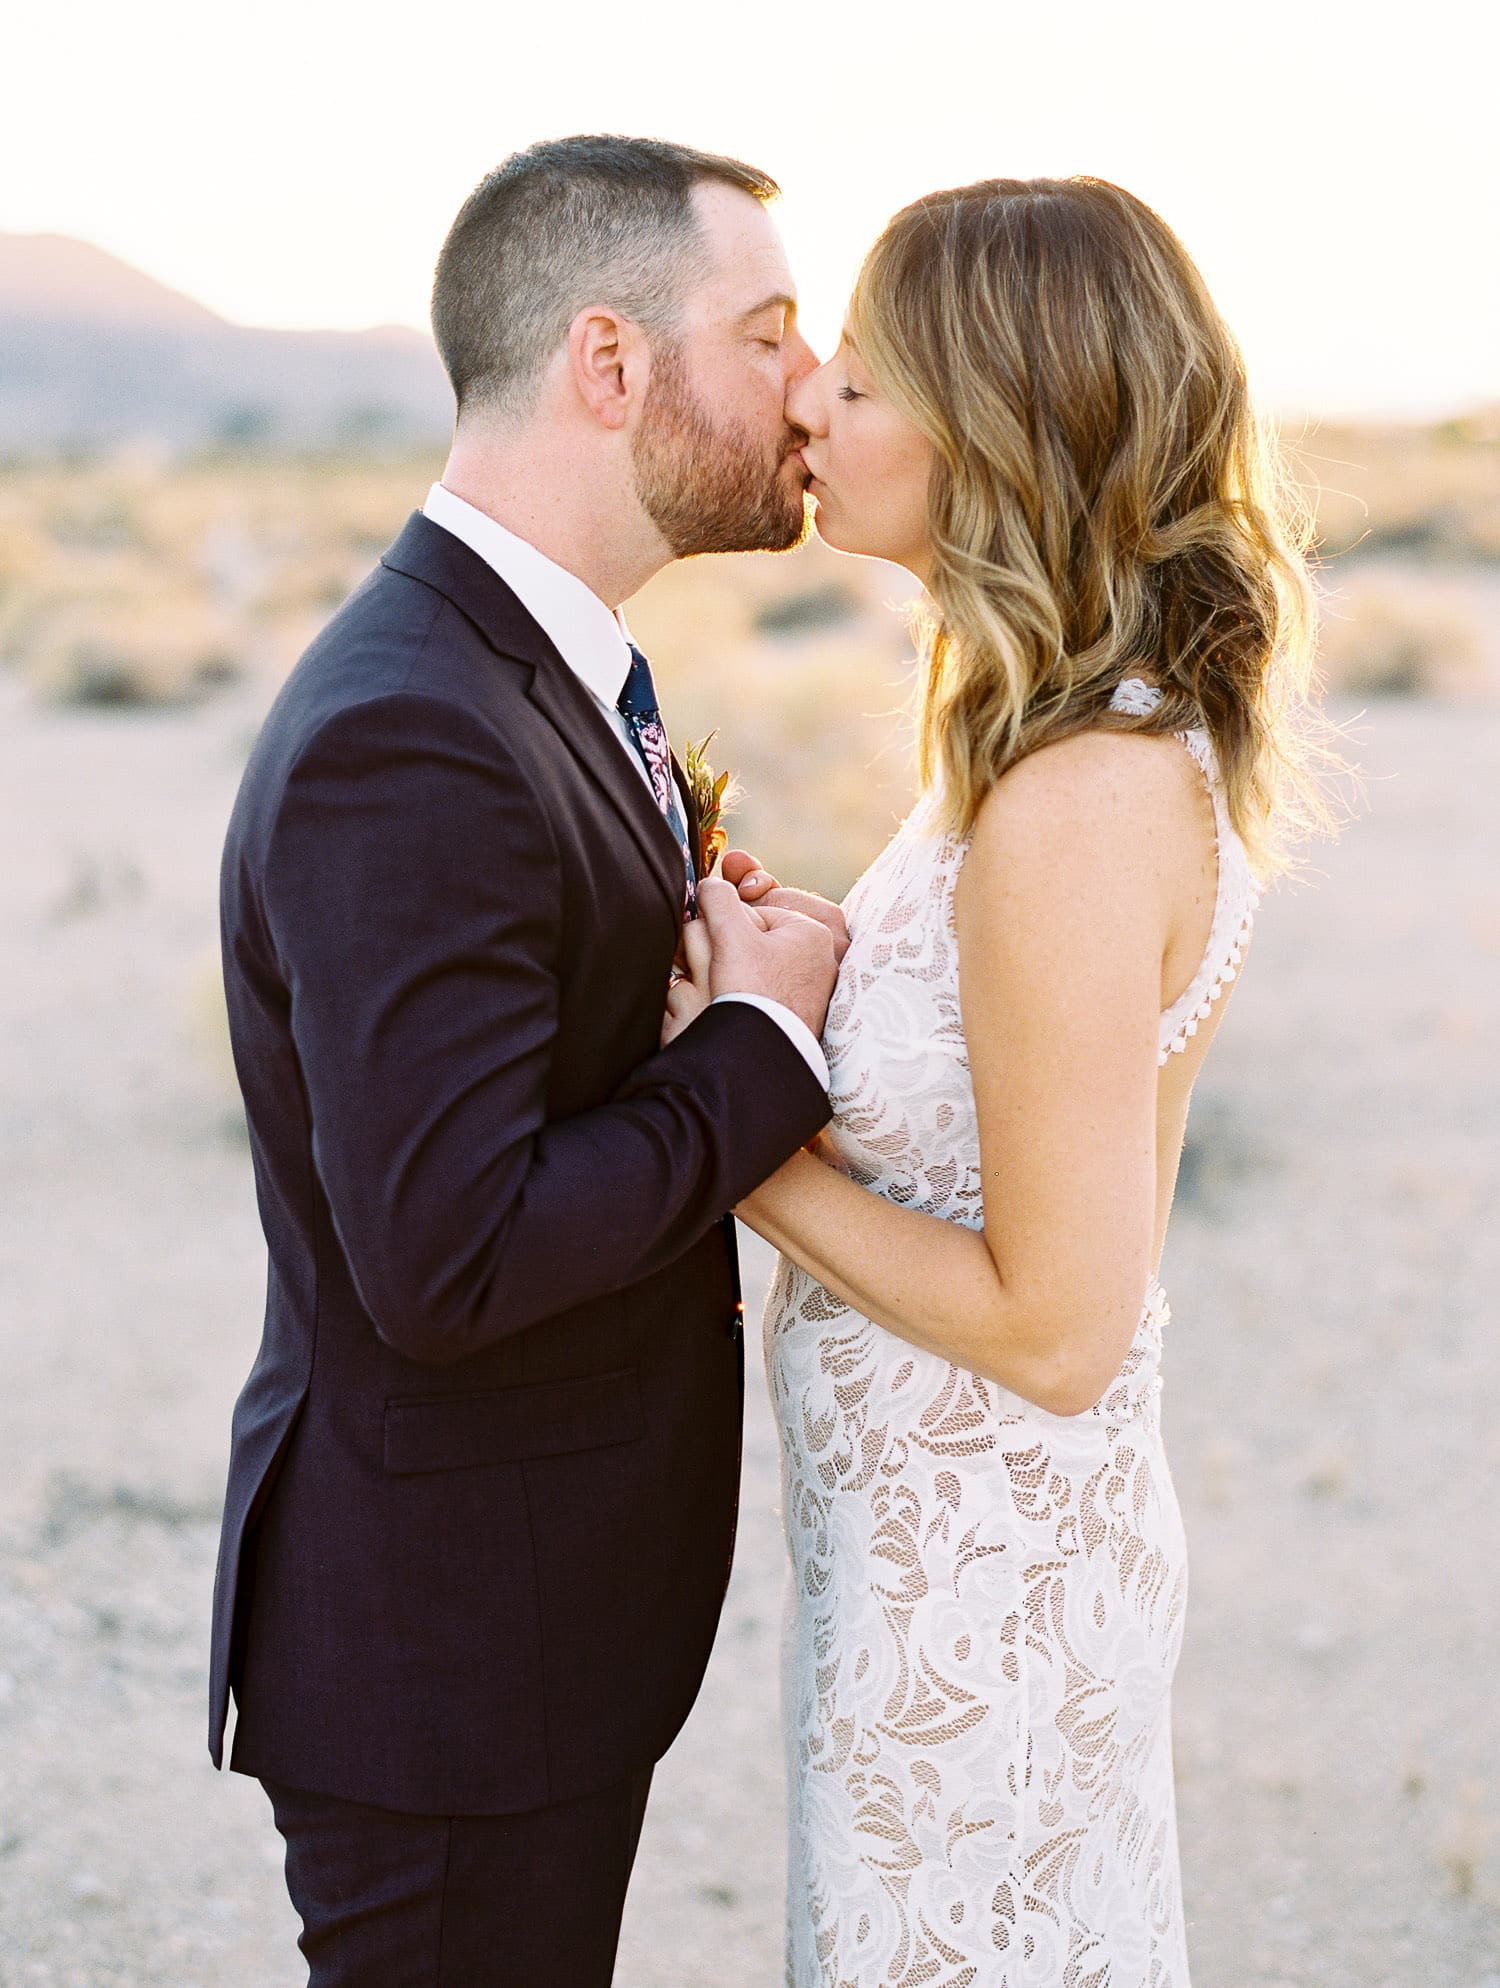 Wedding-Photo-Inspiration-Greg-Ross